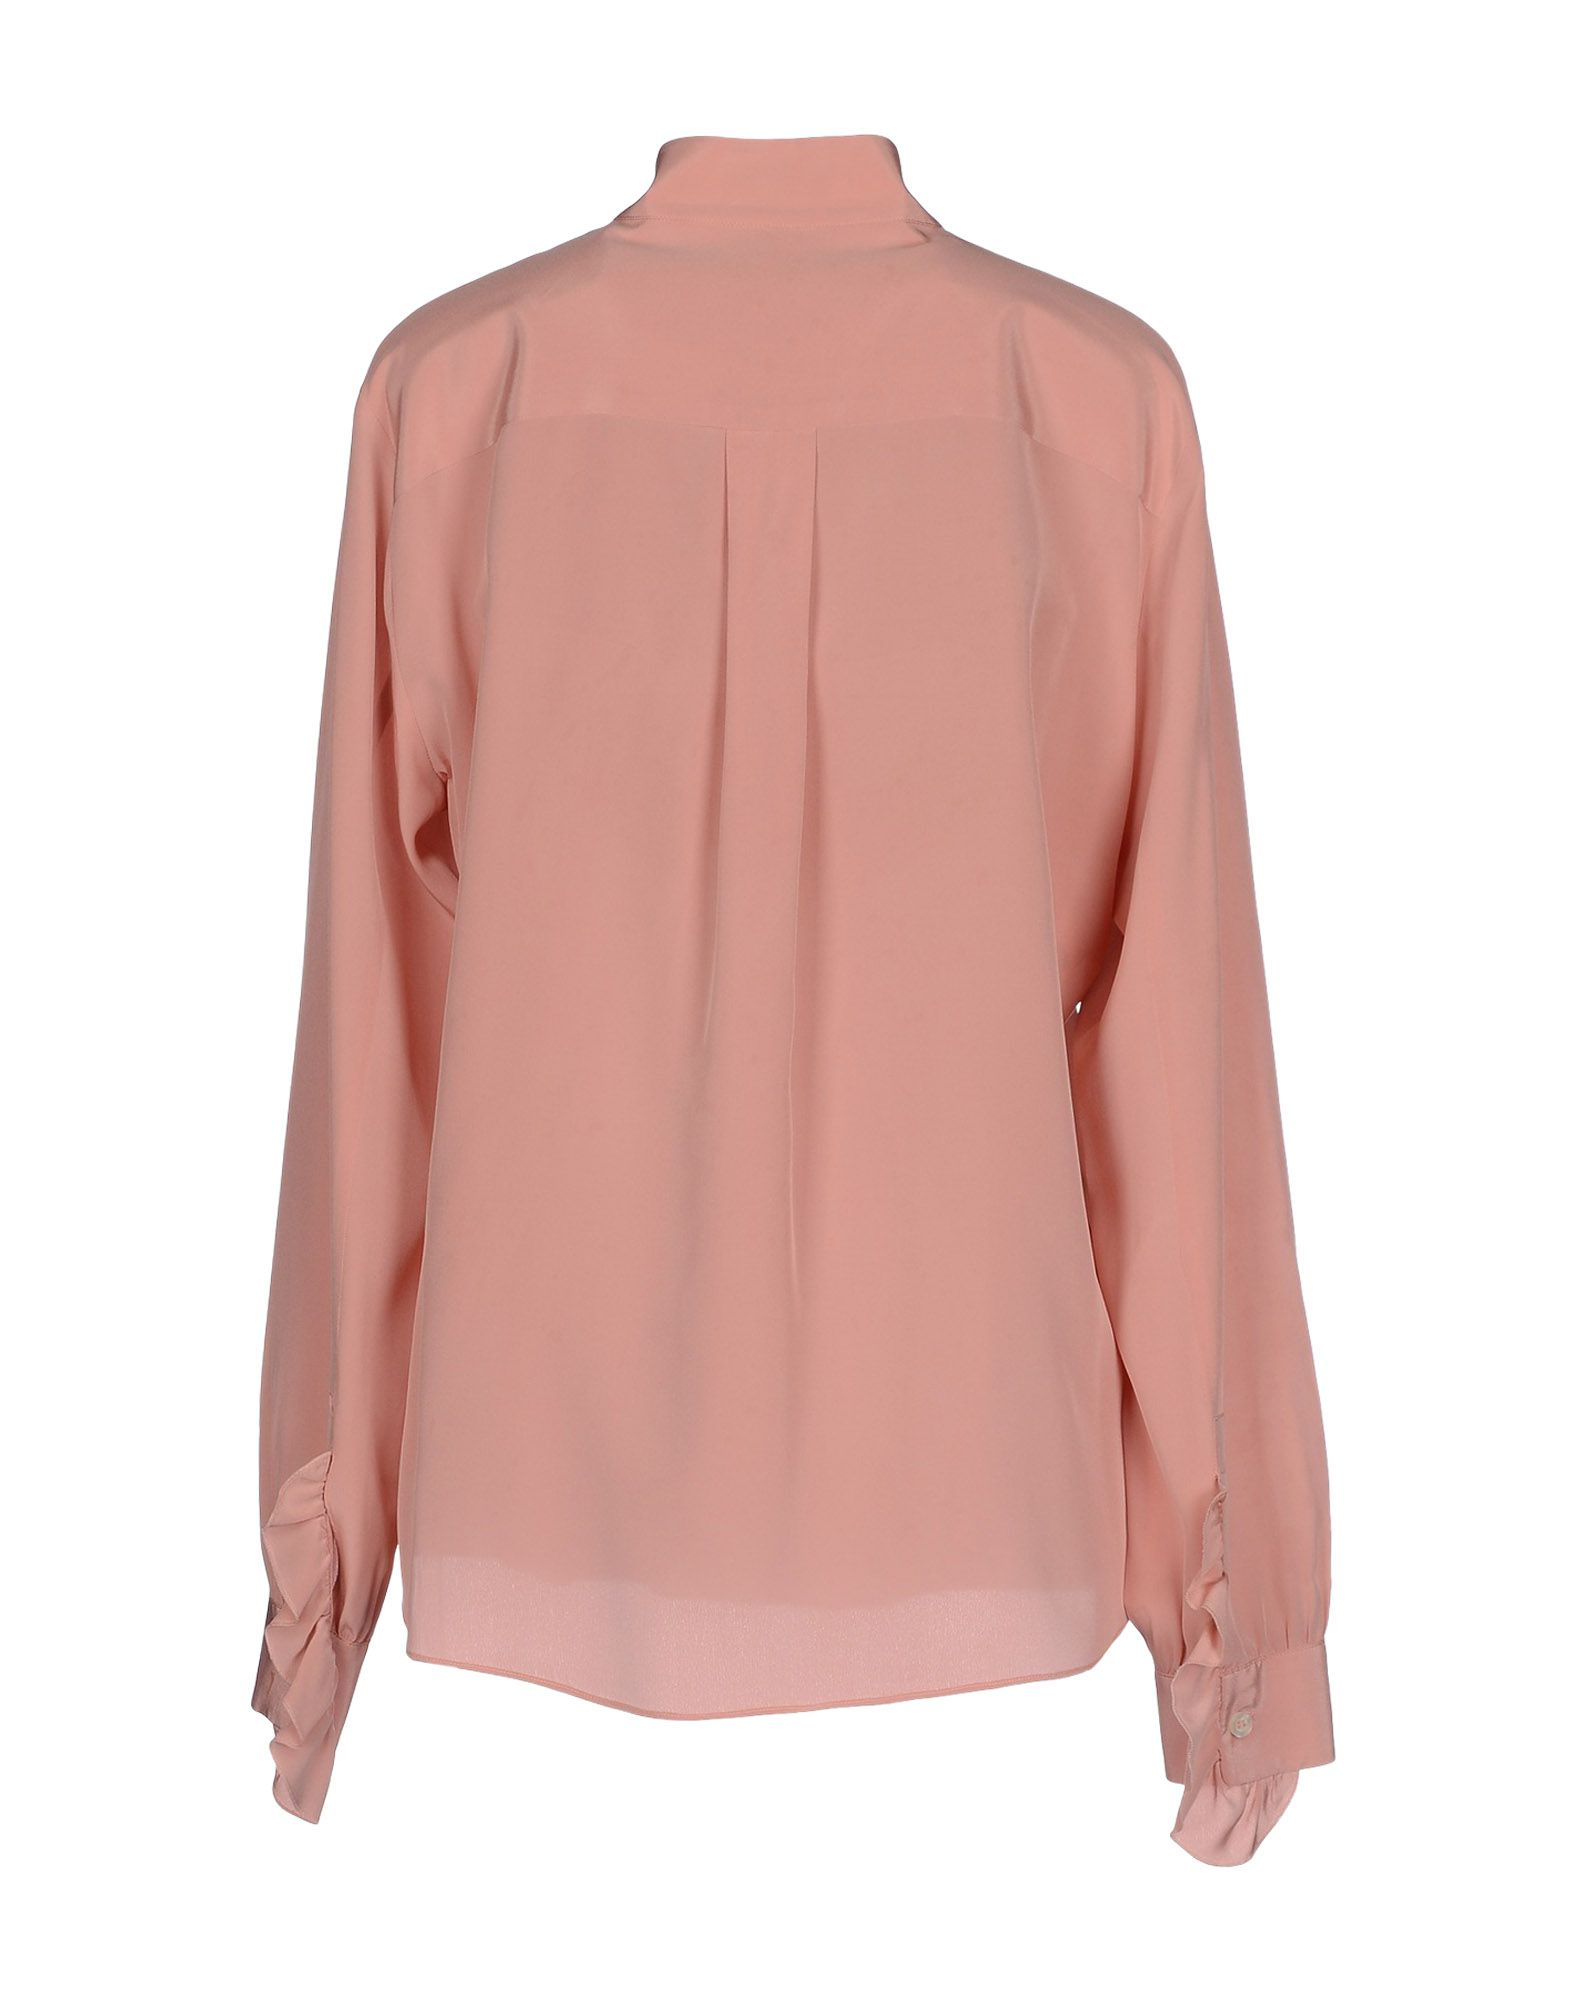 Boutique Moschino Shirt In Pink For Men Pastel Pink Lyst